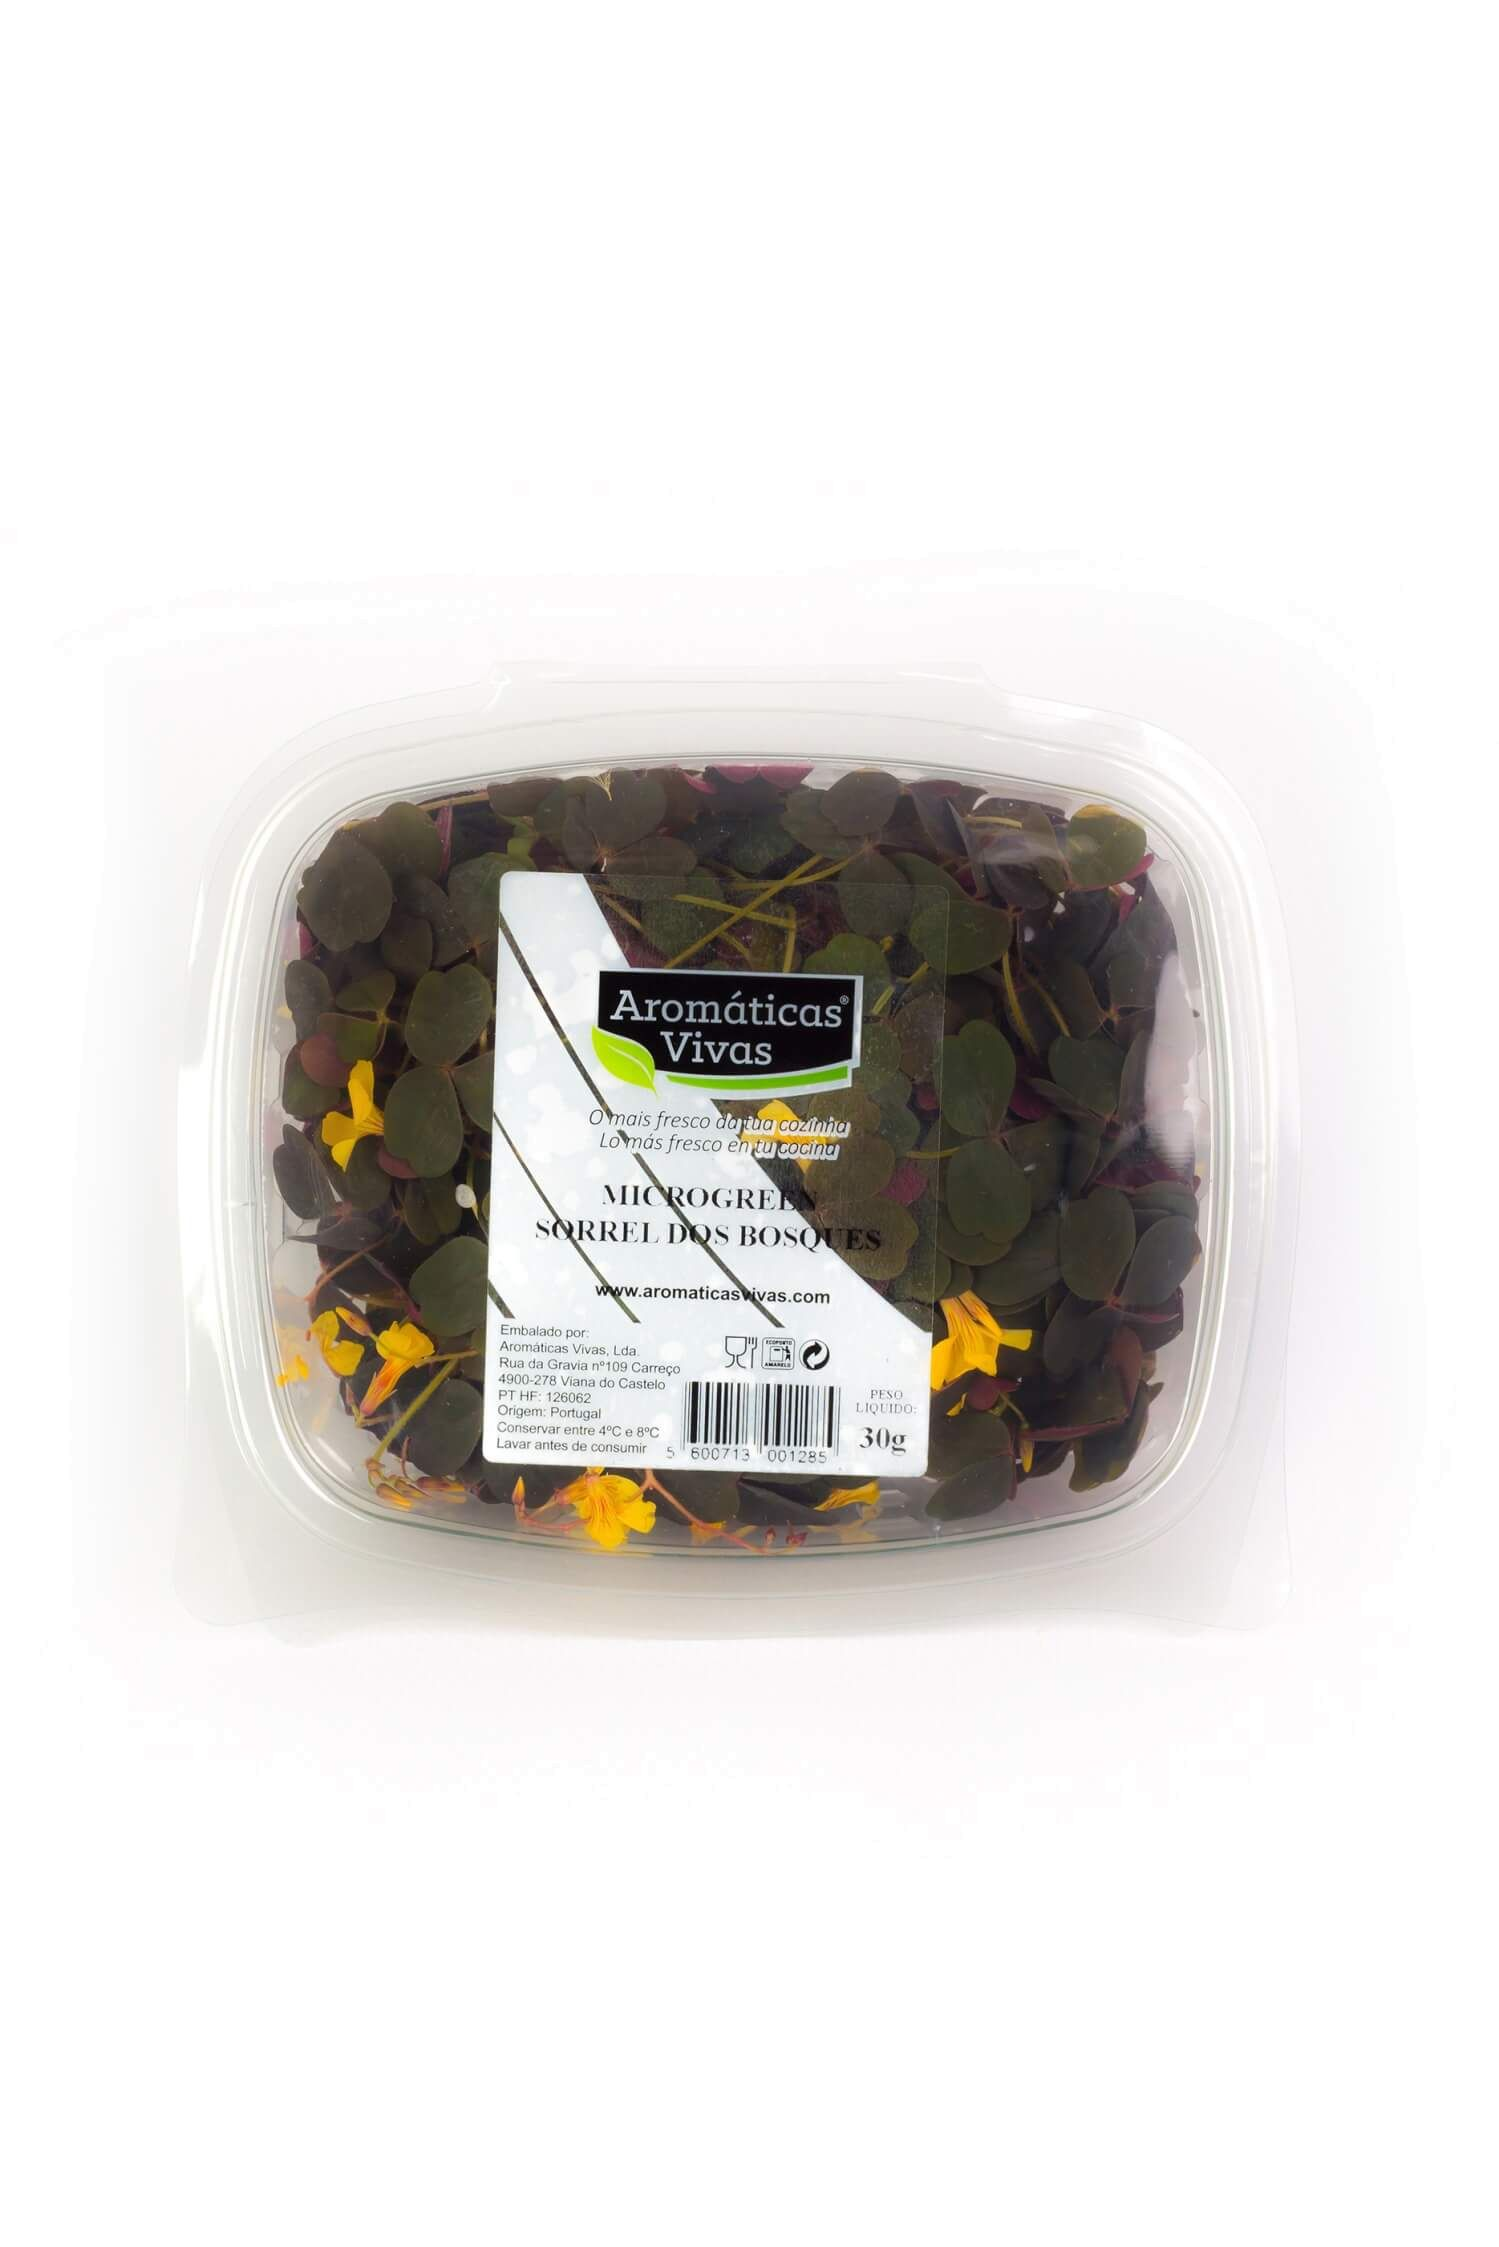 Microgreens Sorrel dos Bosques